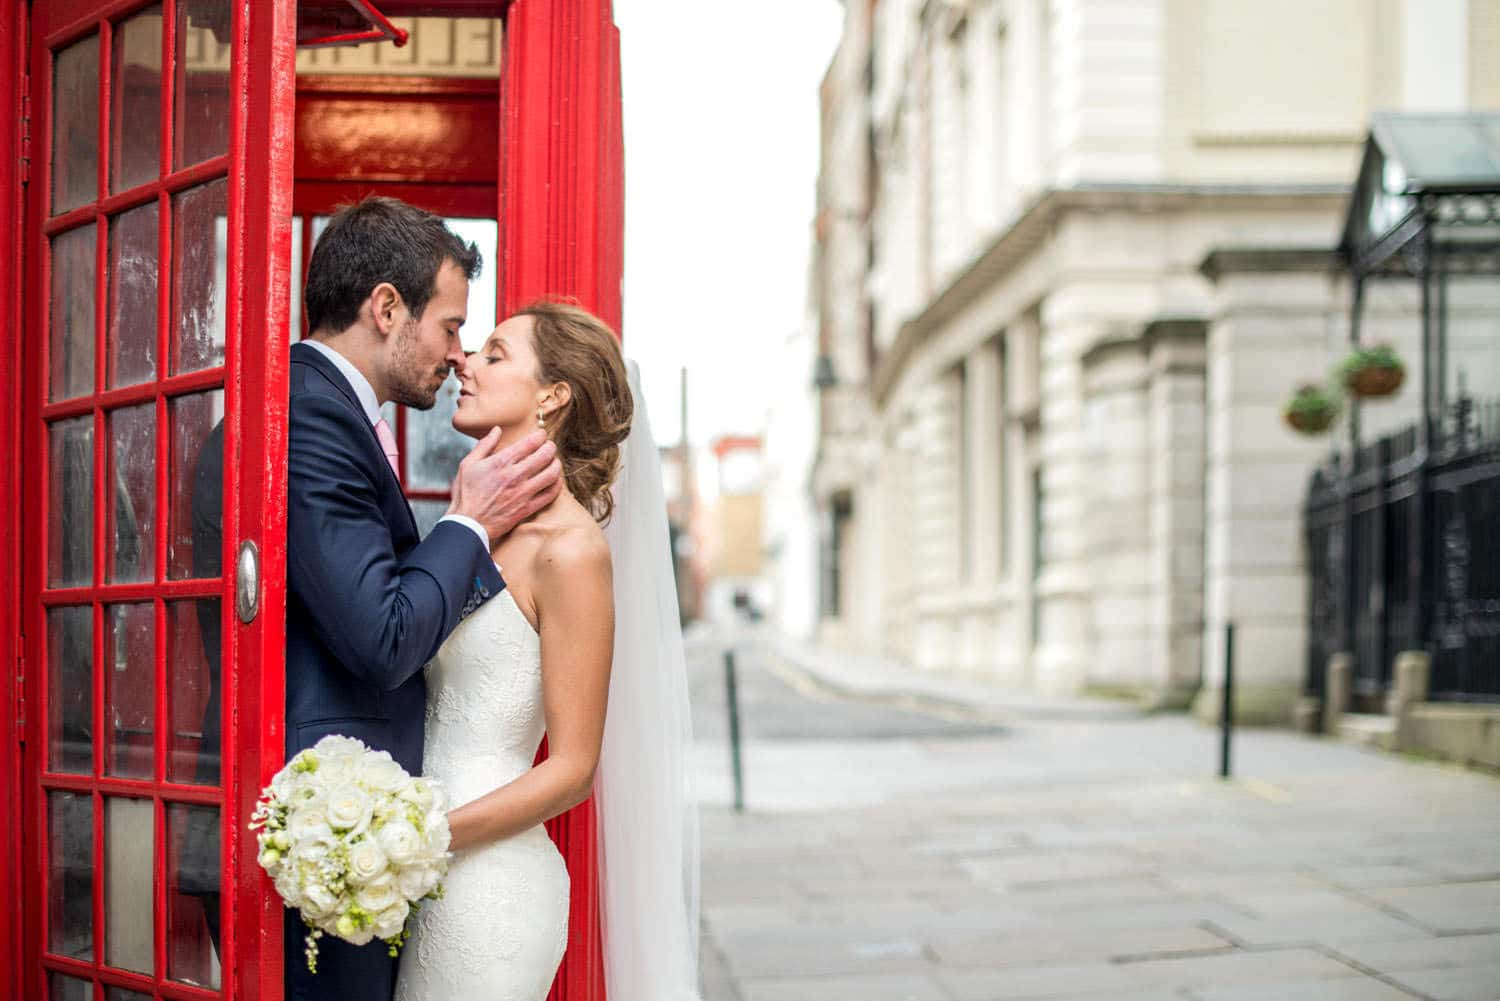 bride and groom wedding portrait by red telephone box